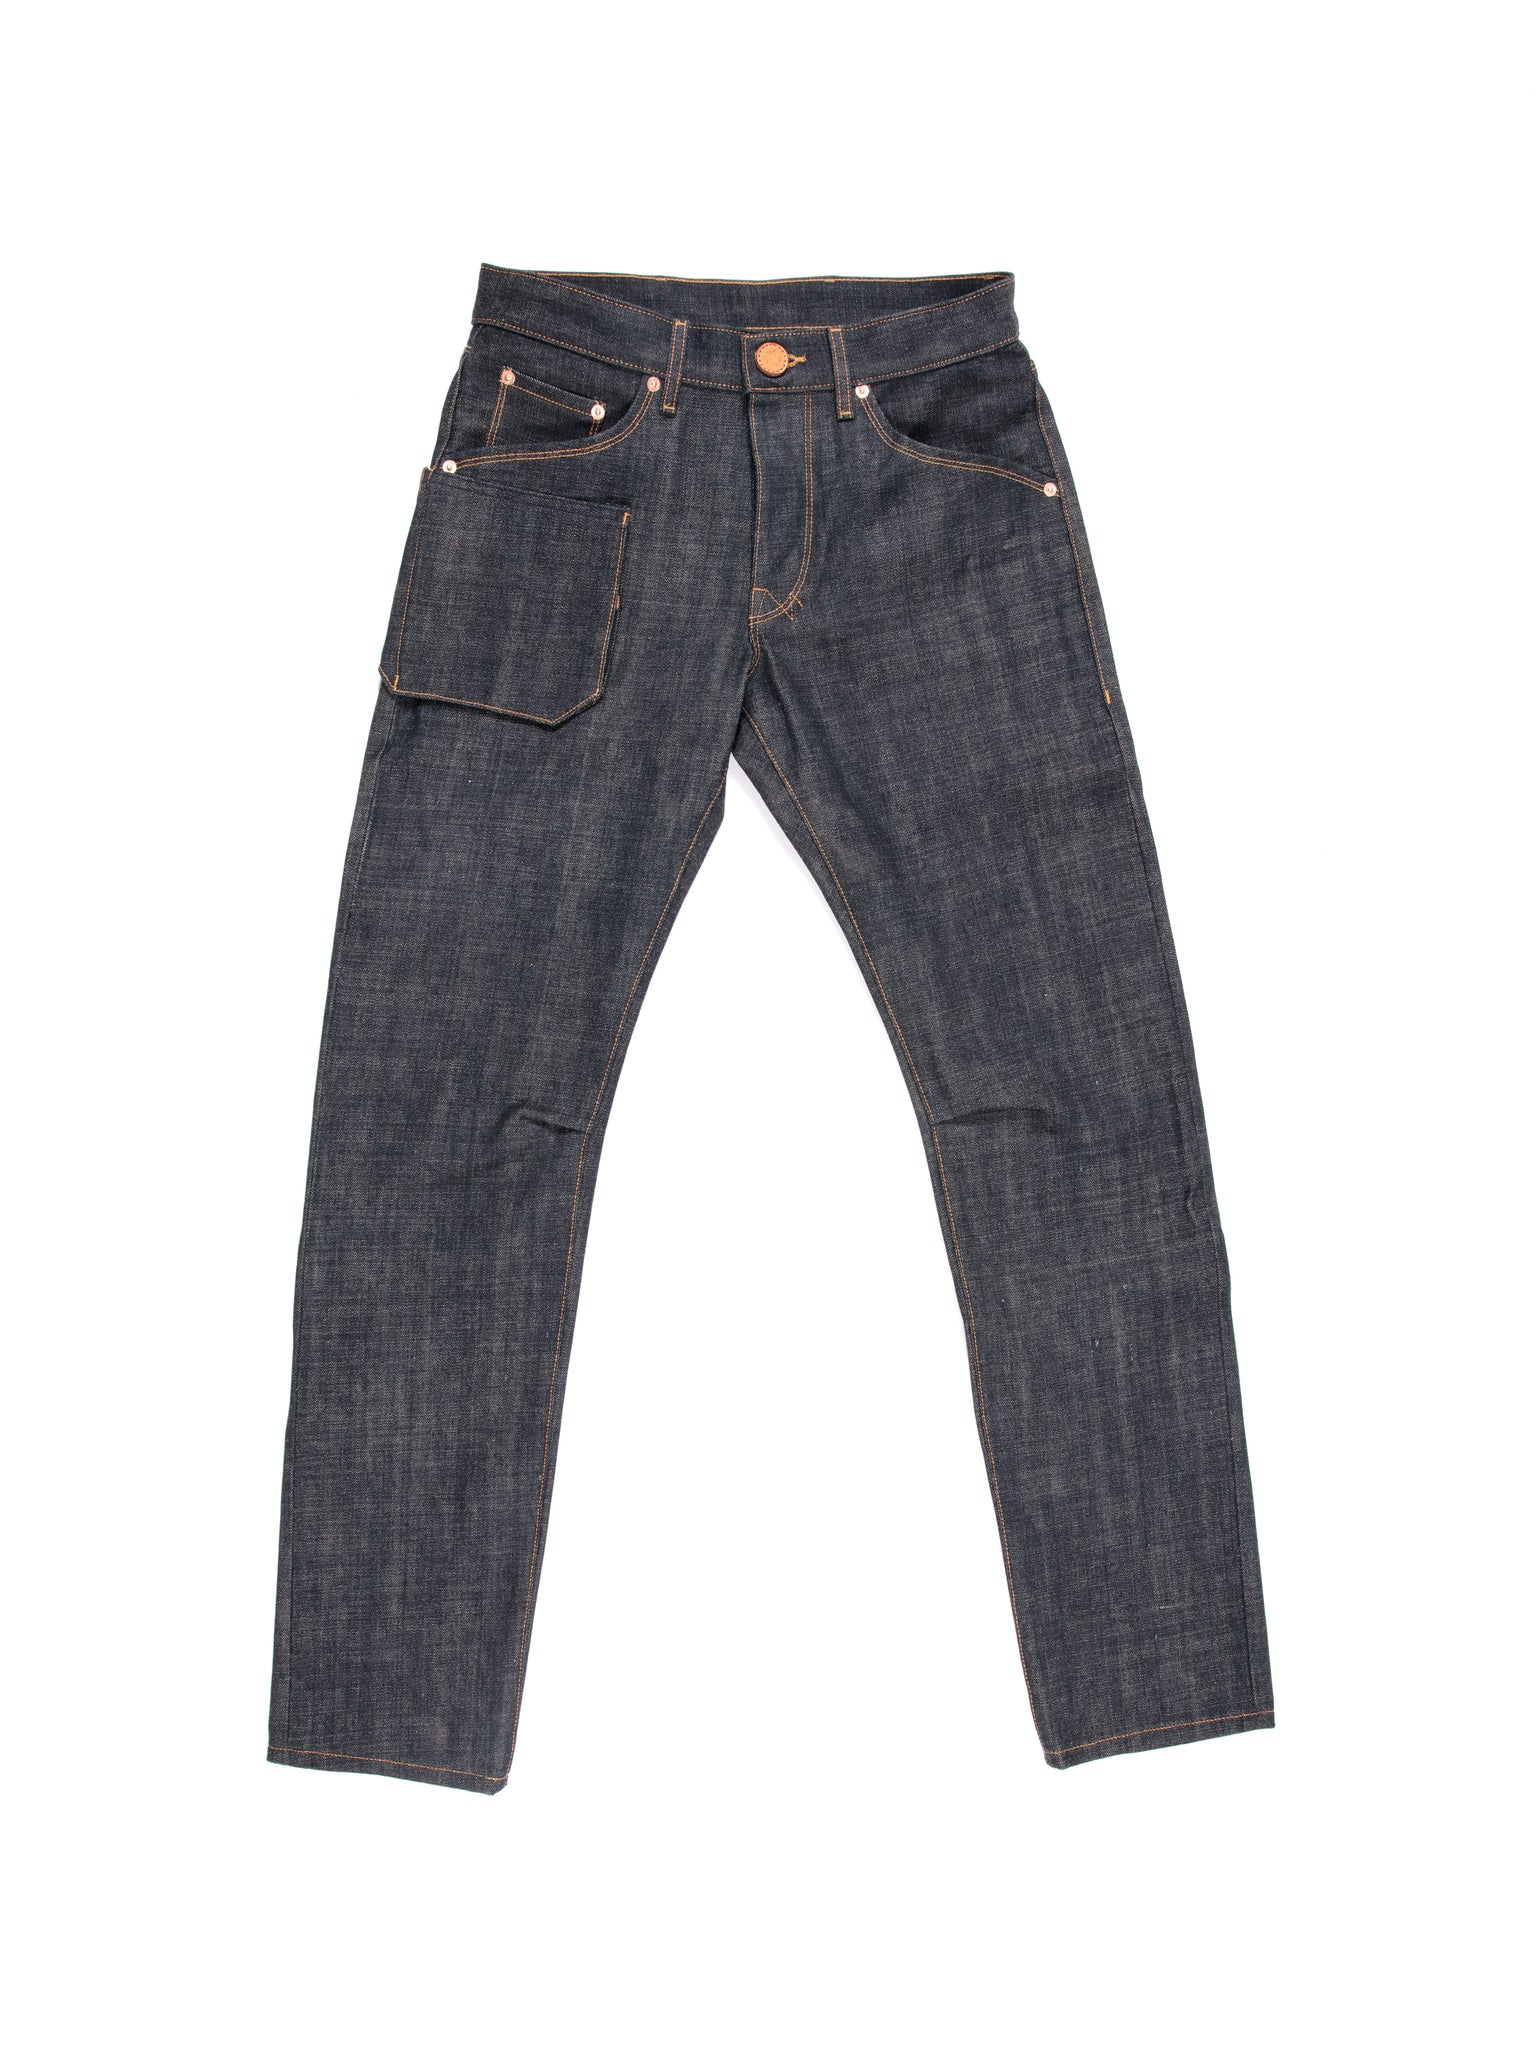 BLUE SELVEDGE DENIM